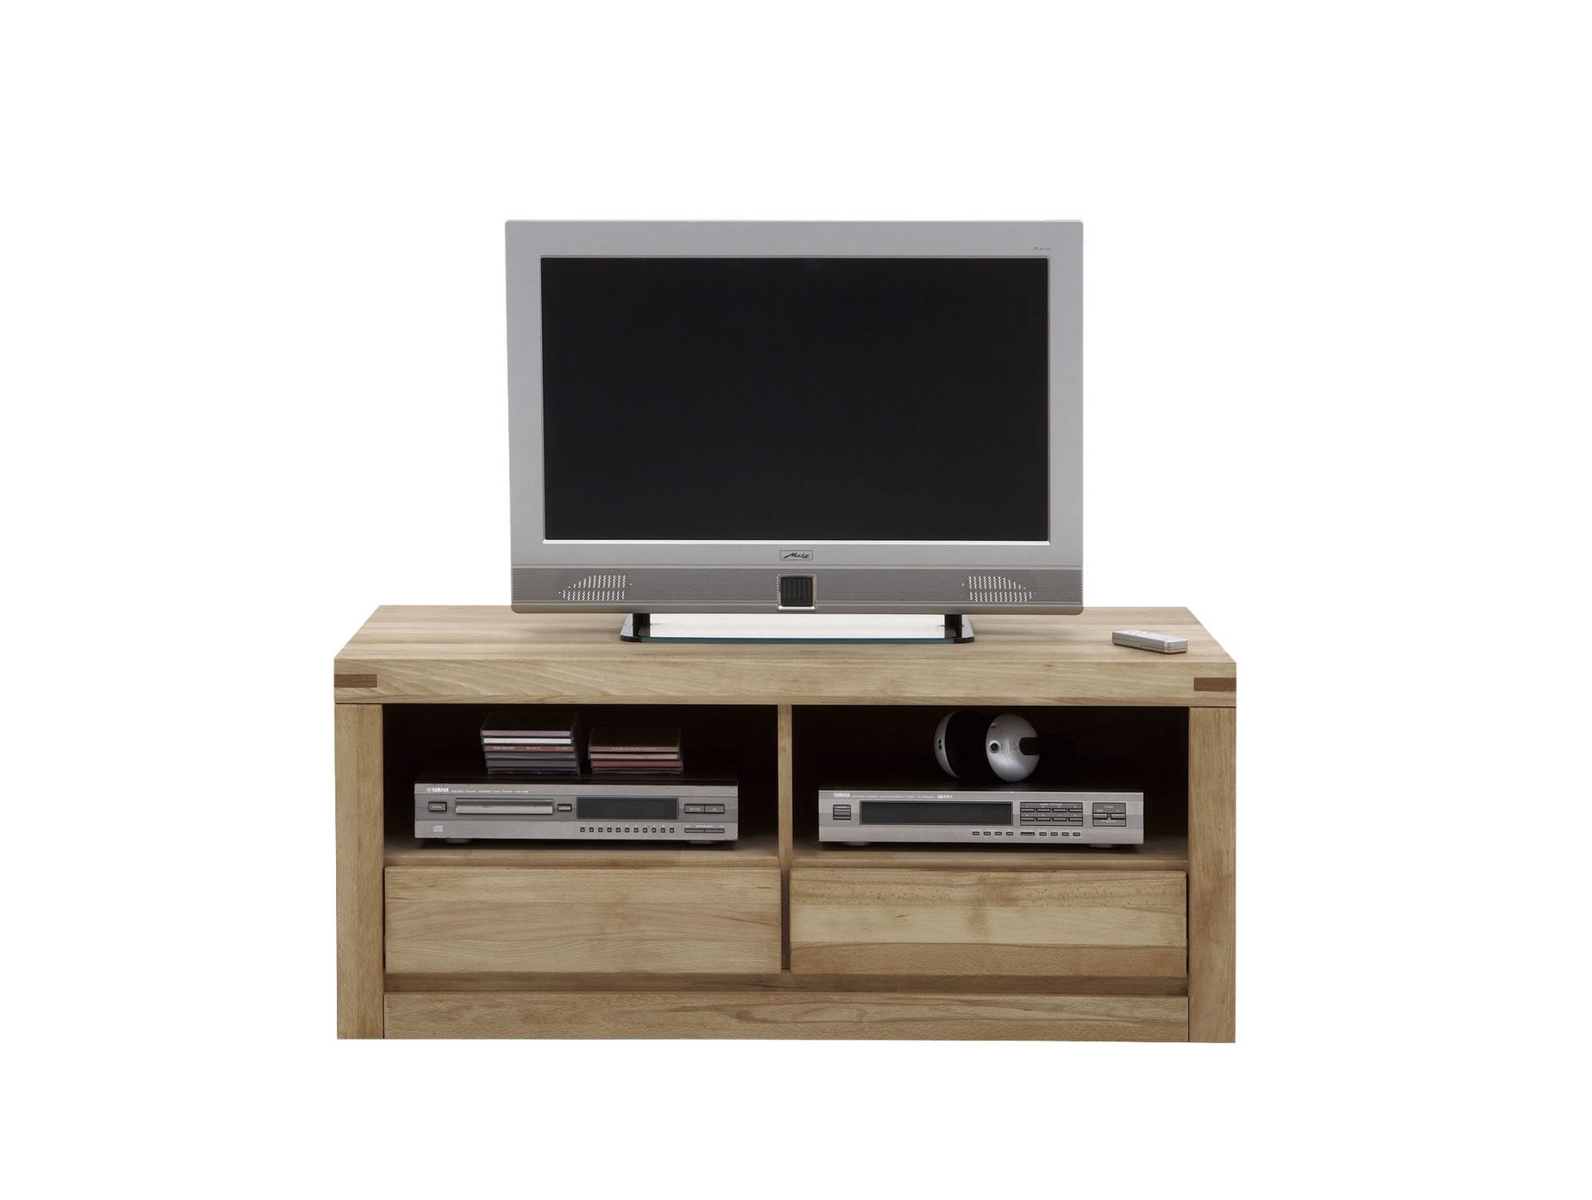 tv kommode fernsehschrank delft massivholz von elfo g nstig bestellen skanm bler. Black Bedroom Furniture Sets. Home Design Ideas